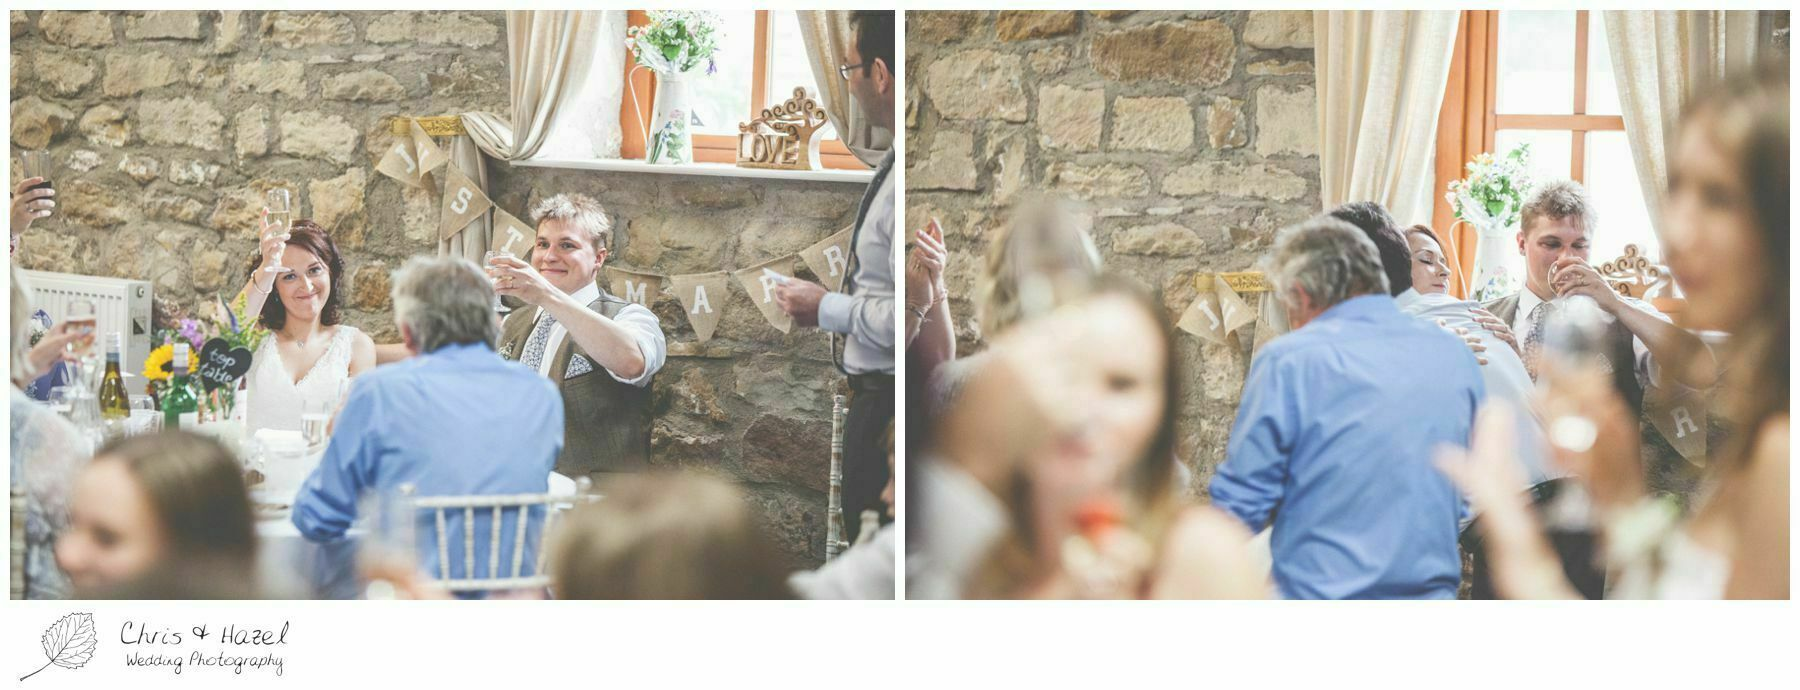 father of bride speech, wedding breakfast barn, wood wedding theme, eco wedding, love letters, wedding, Eccup Wedding Photographer, Lineham Farm, Wedding Photography Leeds, Chris and Hazel Wedding Photography, Richard Wyatt, Laura Kelly